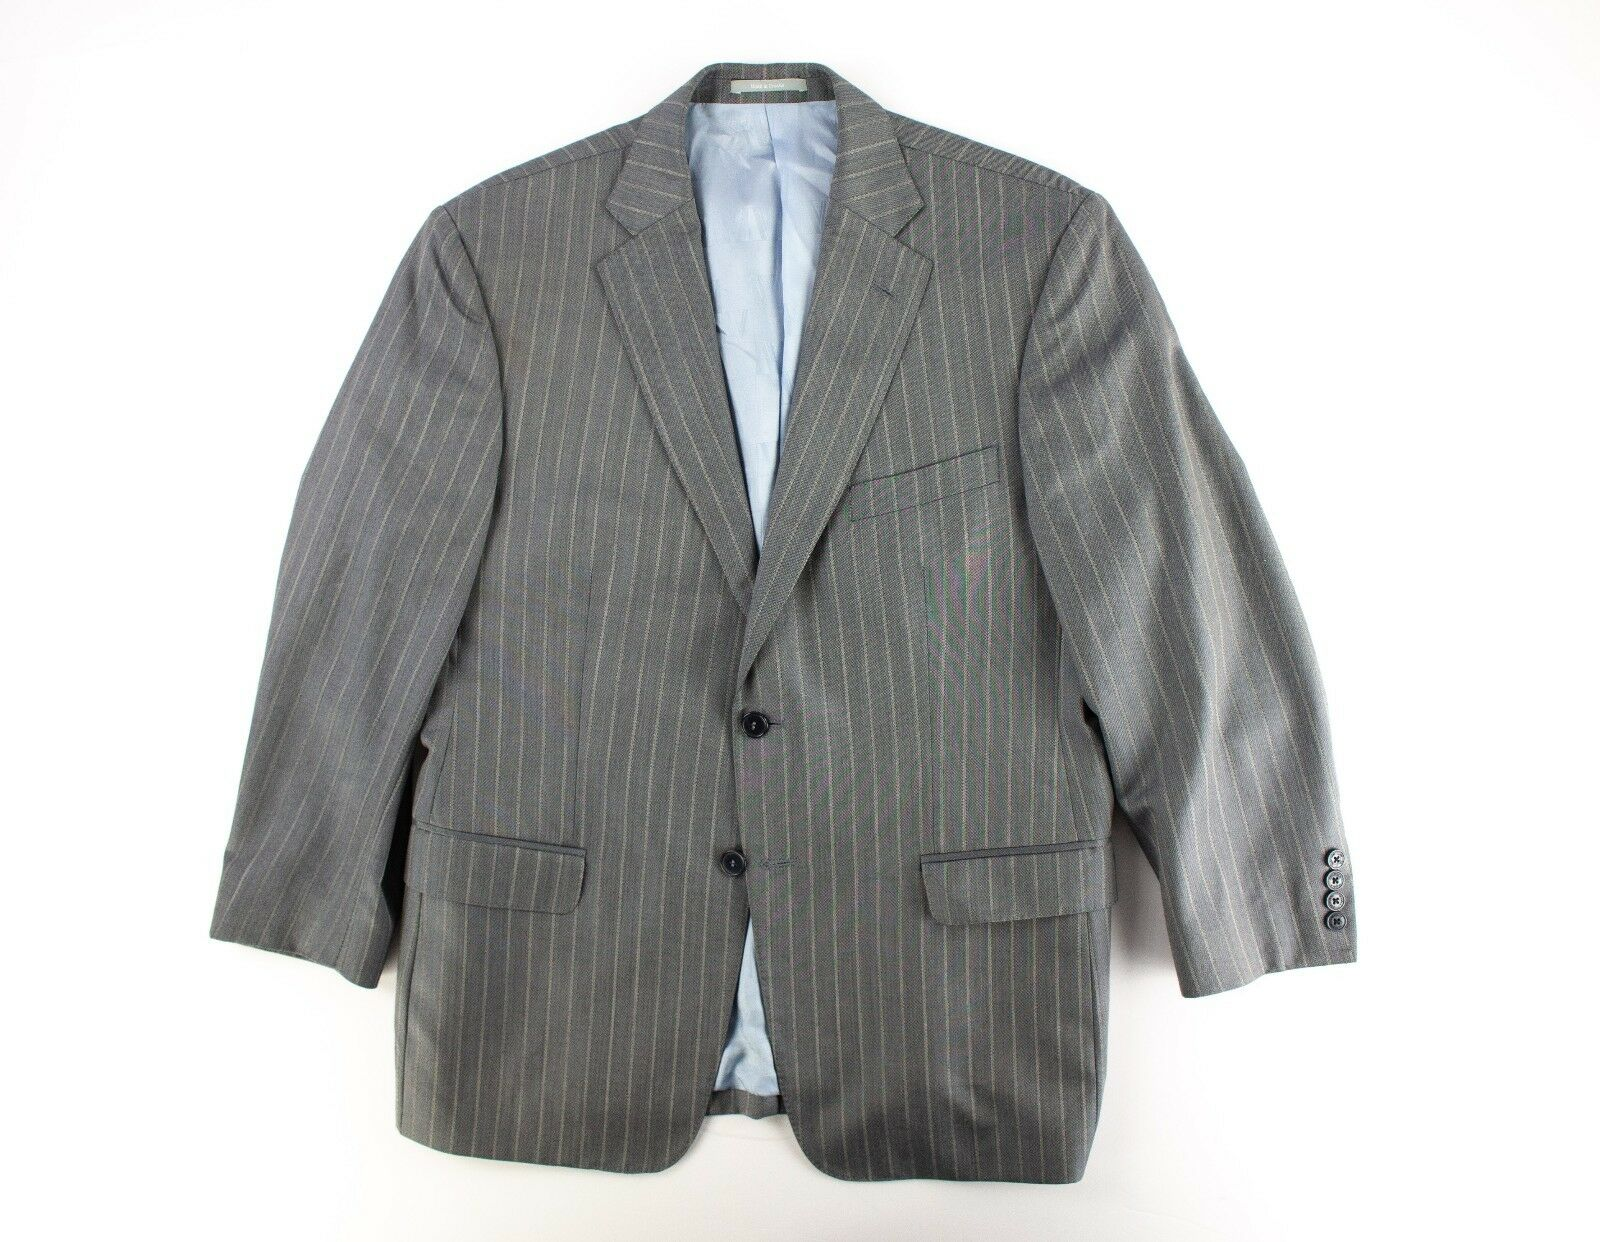 Versace City grau Striped Sports Coat Sz. 52 US 42 2 Vent 2 Button Slim Fit